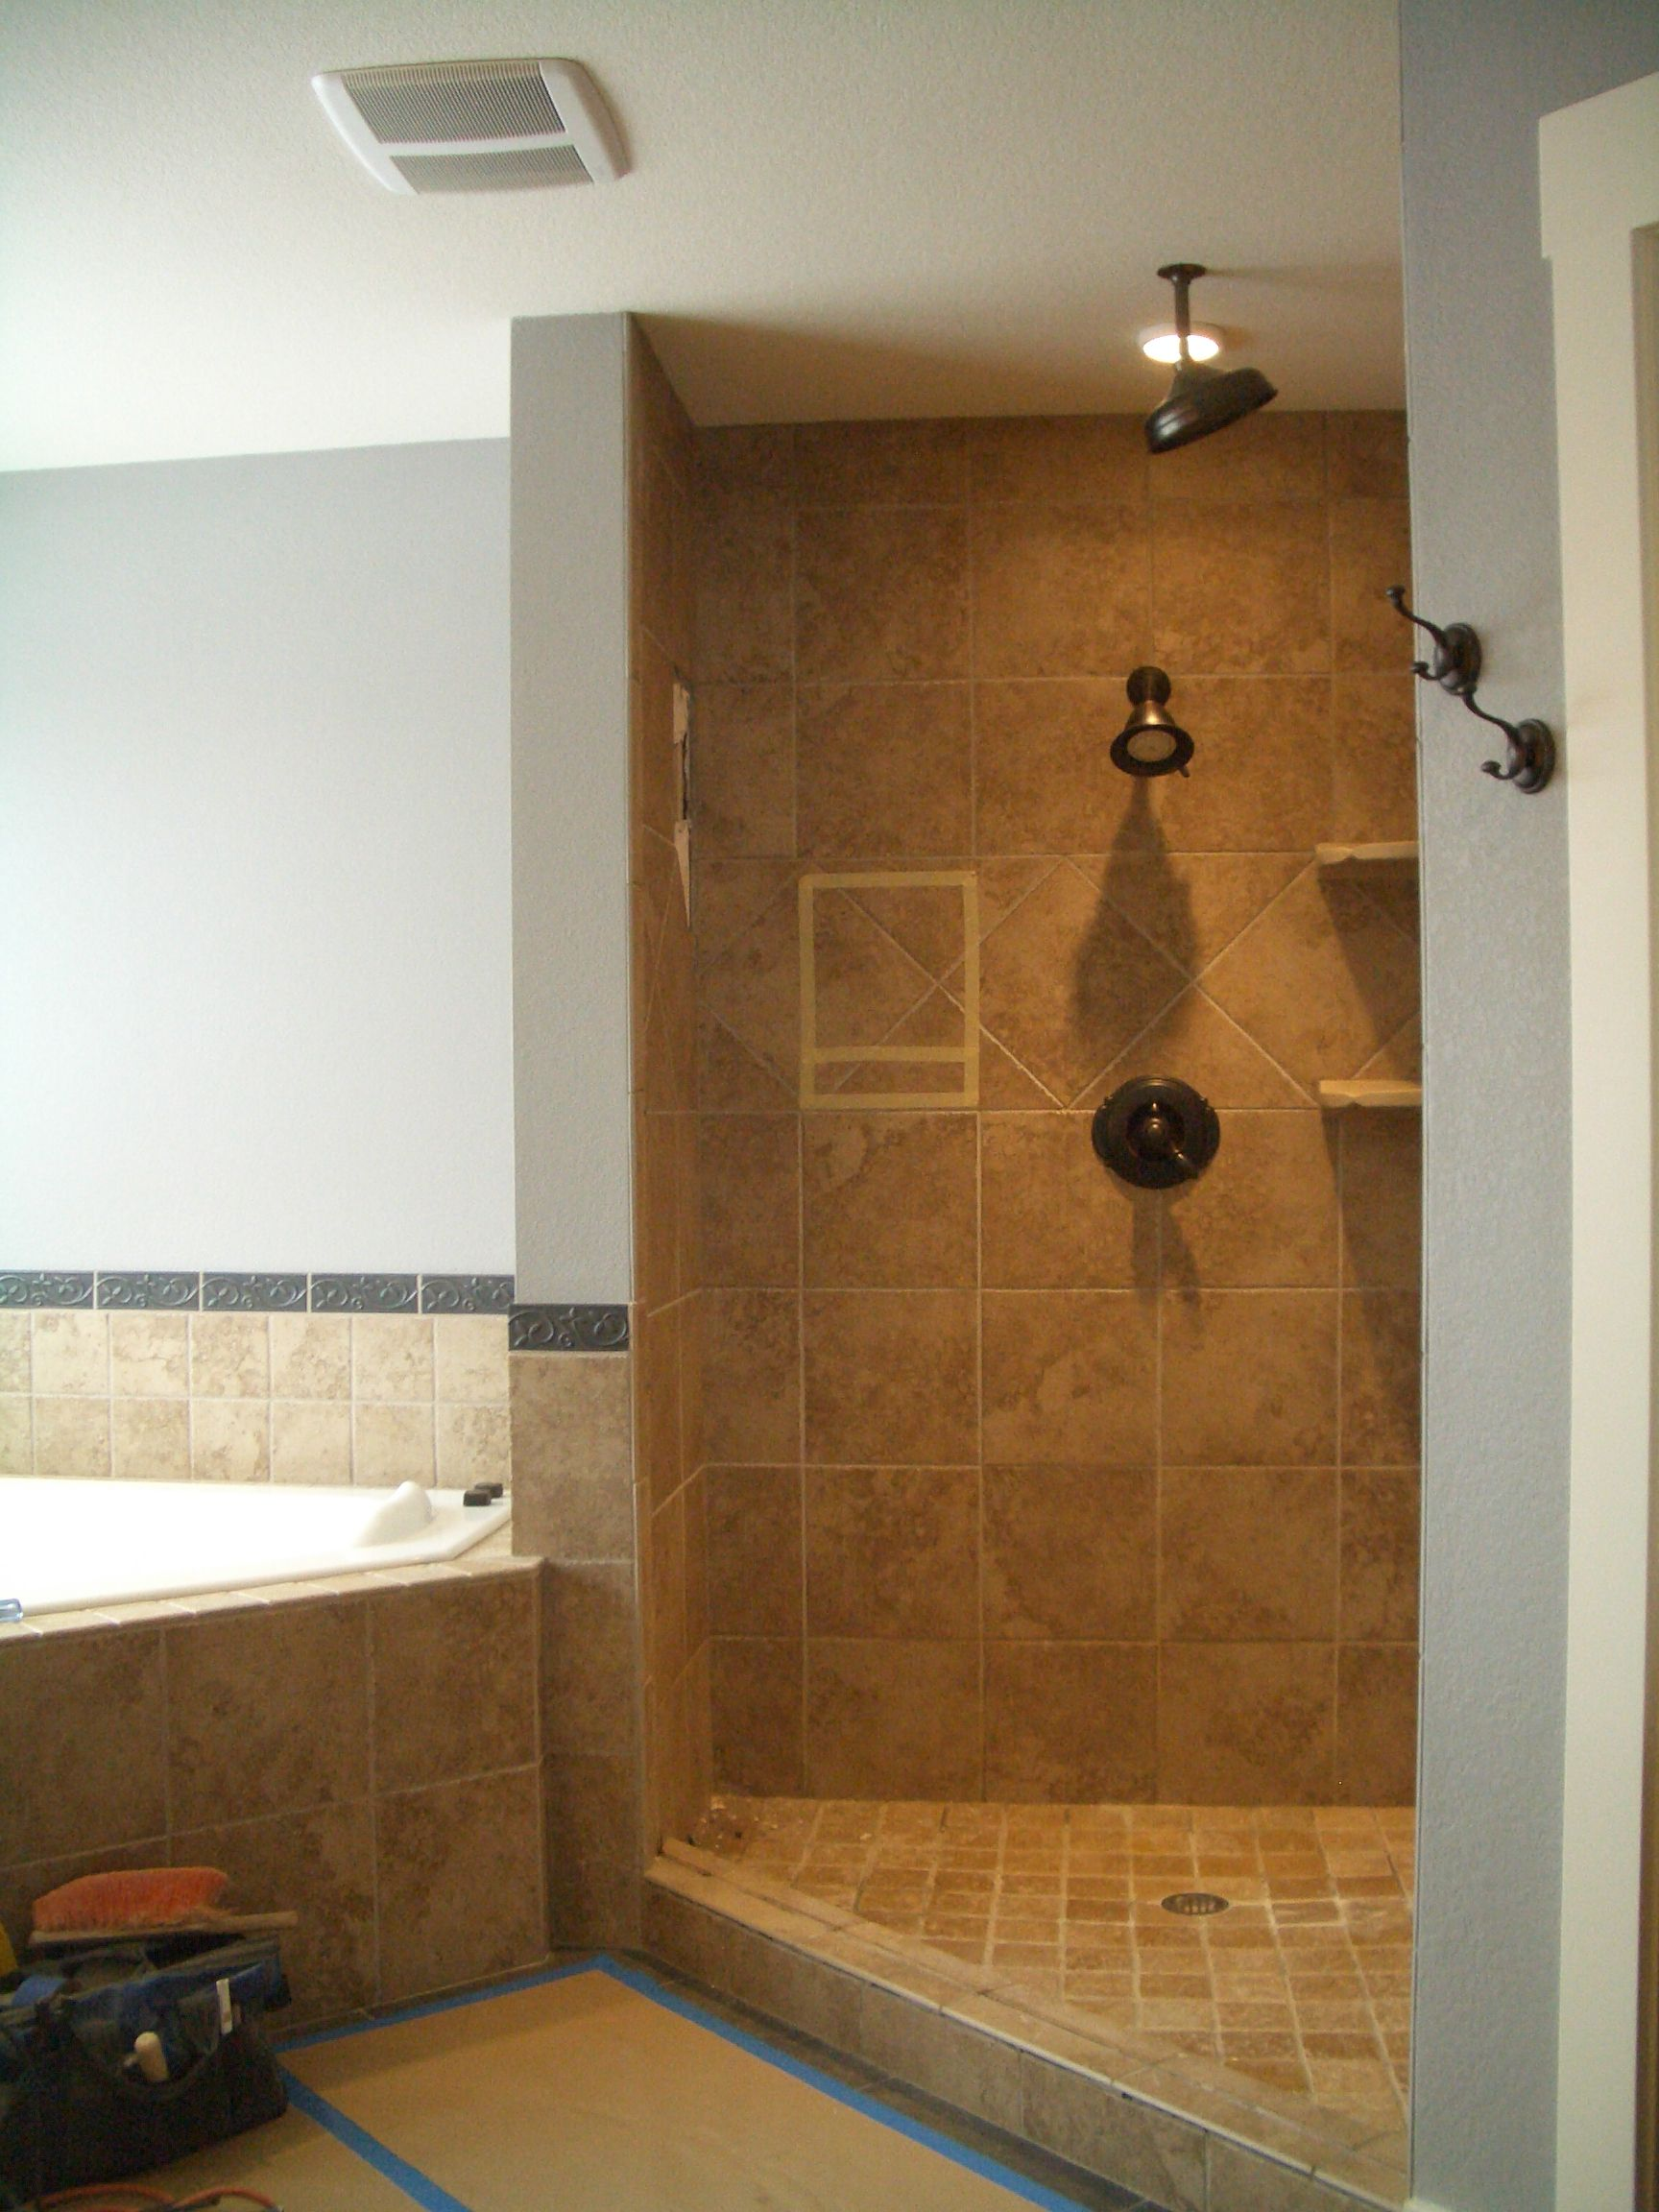 Bathroom Shower Remodel bathroom shower remodel cost | ideas | pinterest | bathroom shower